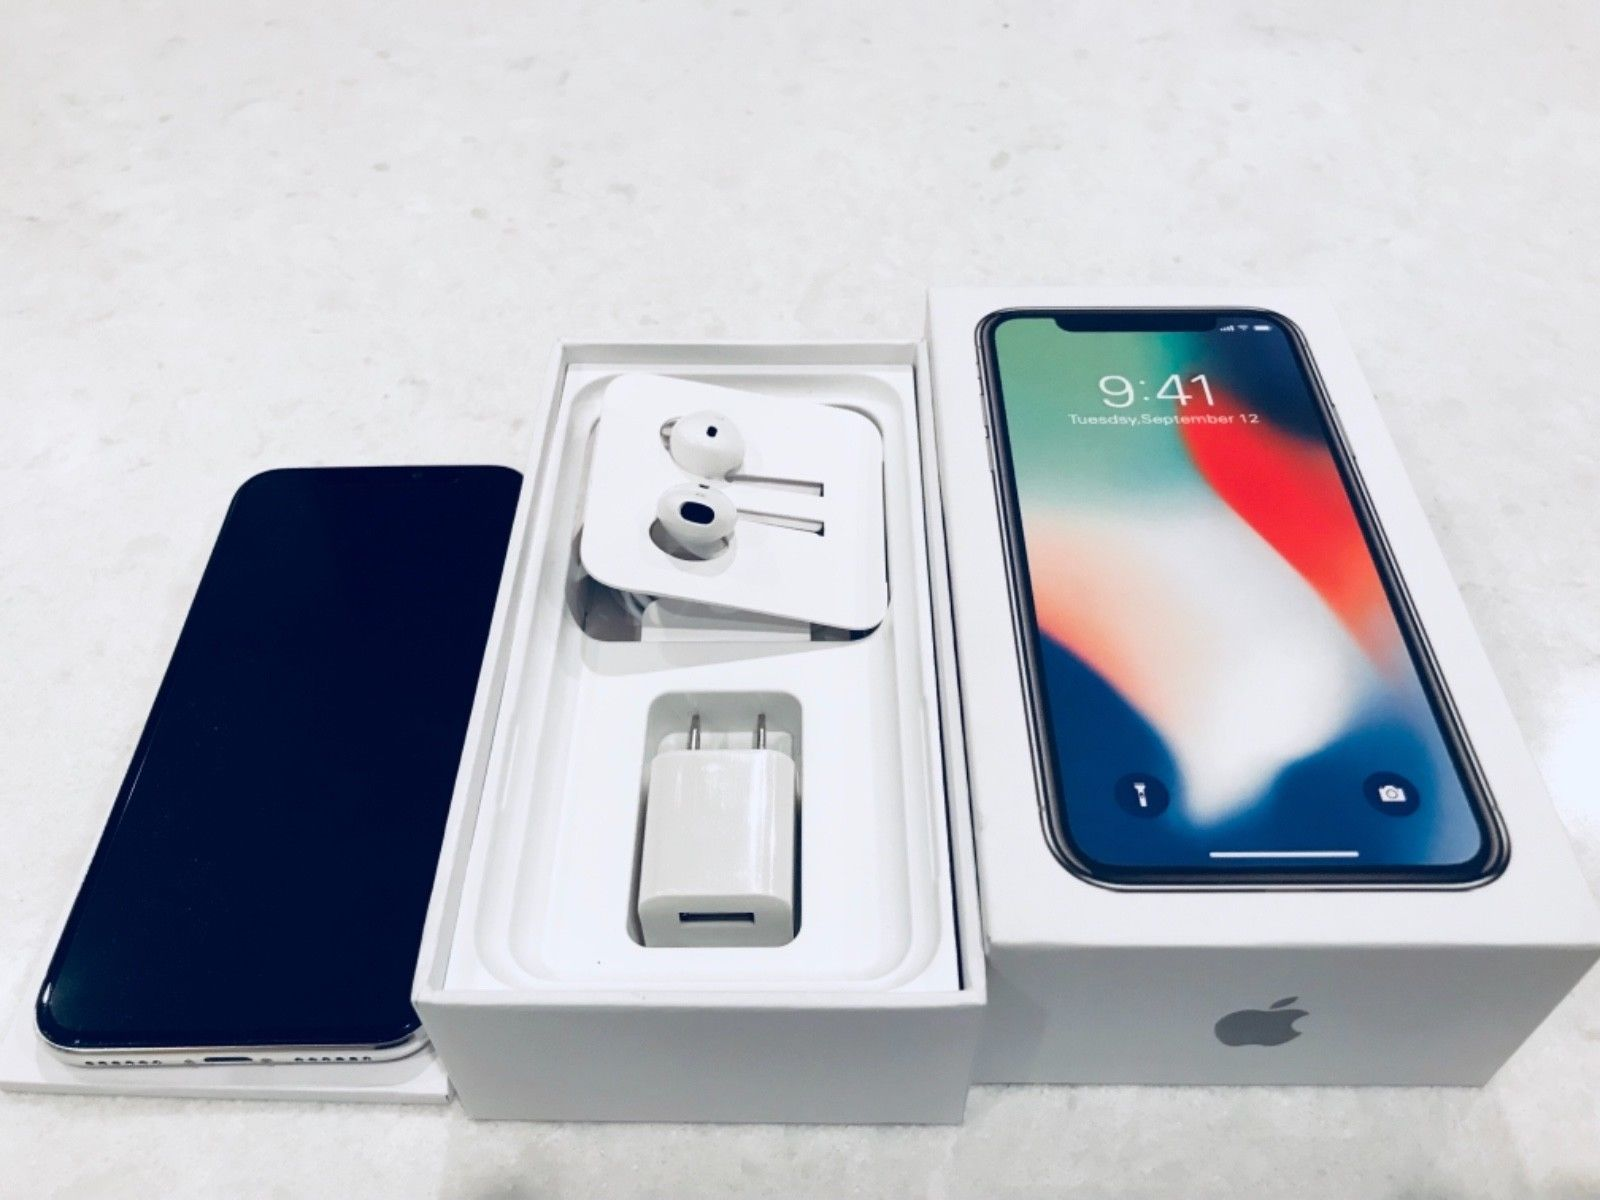 Wholesale Price Buy : iPhone x,Note 8,S8 Plus,iPhone 8 Plus ouedkniss